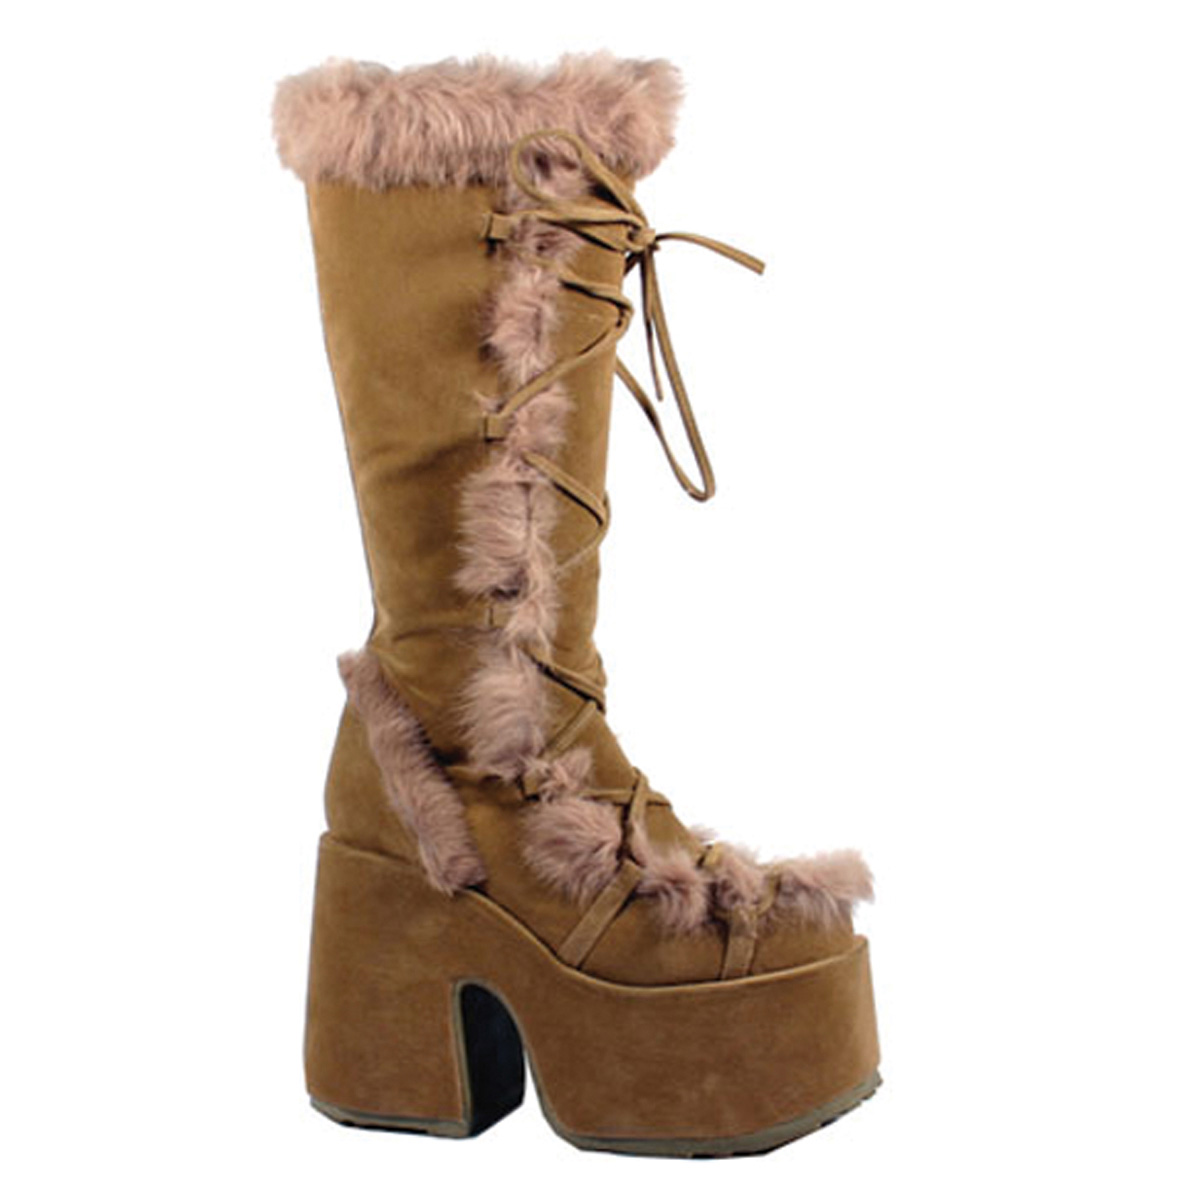 13f35669b092c Demonia SHOES & BOOTS : Women's Mid-Calf & Knee High Boots :